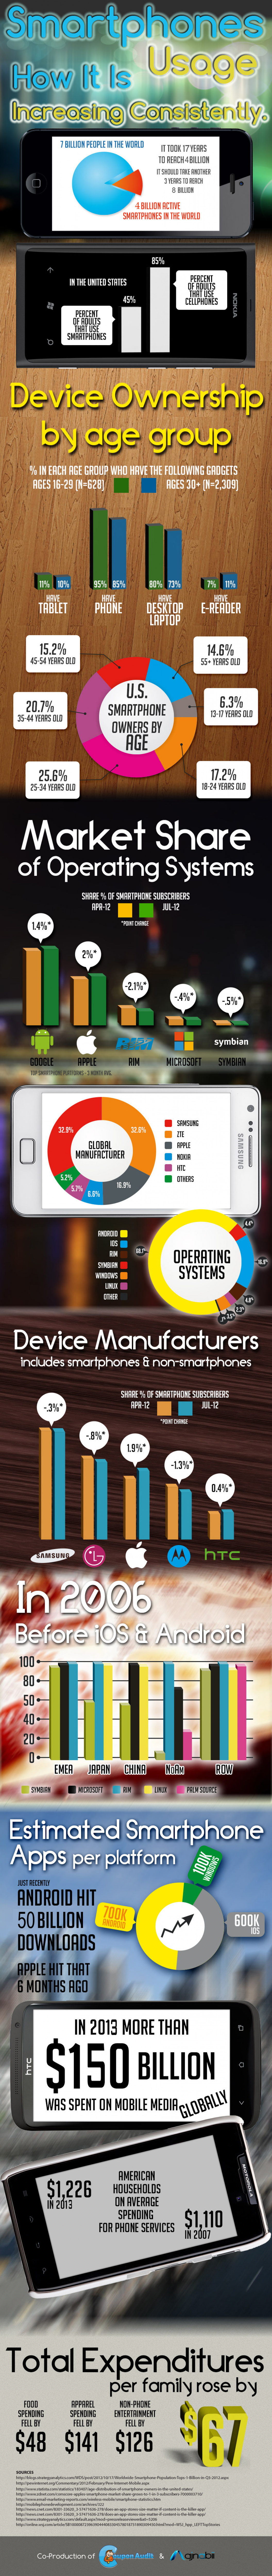 Smartphones Usage How It Is Increasing Consistently  Infographic